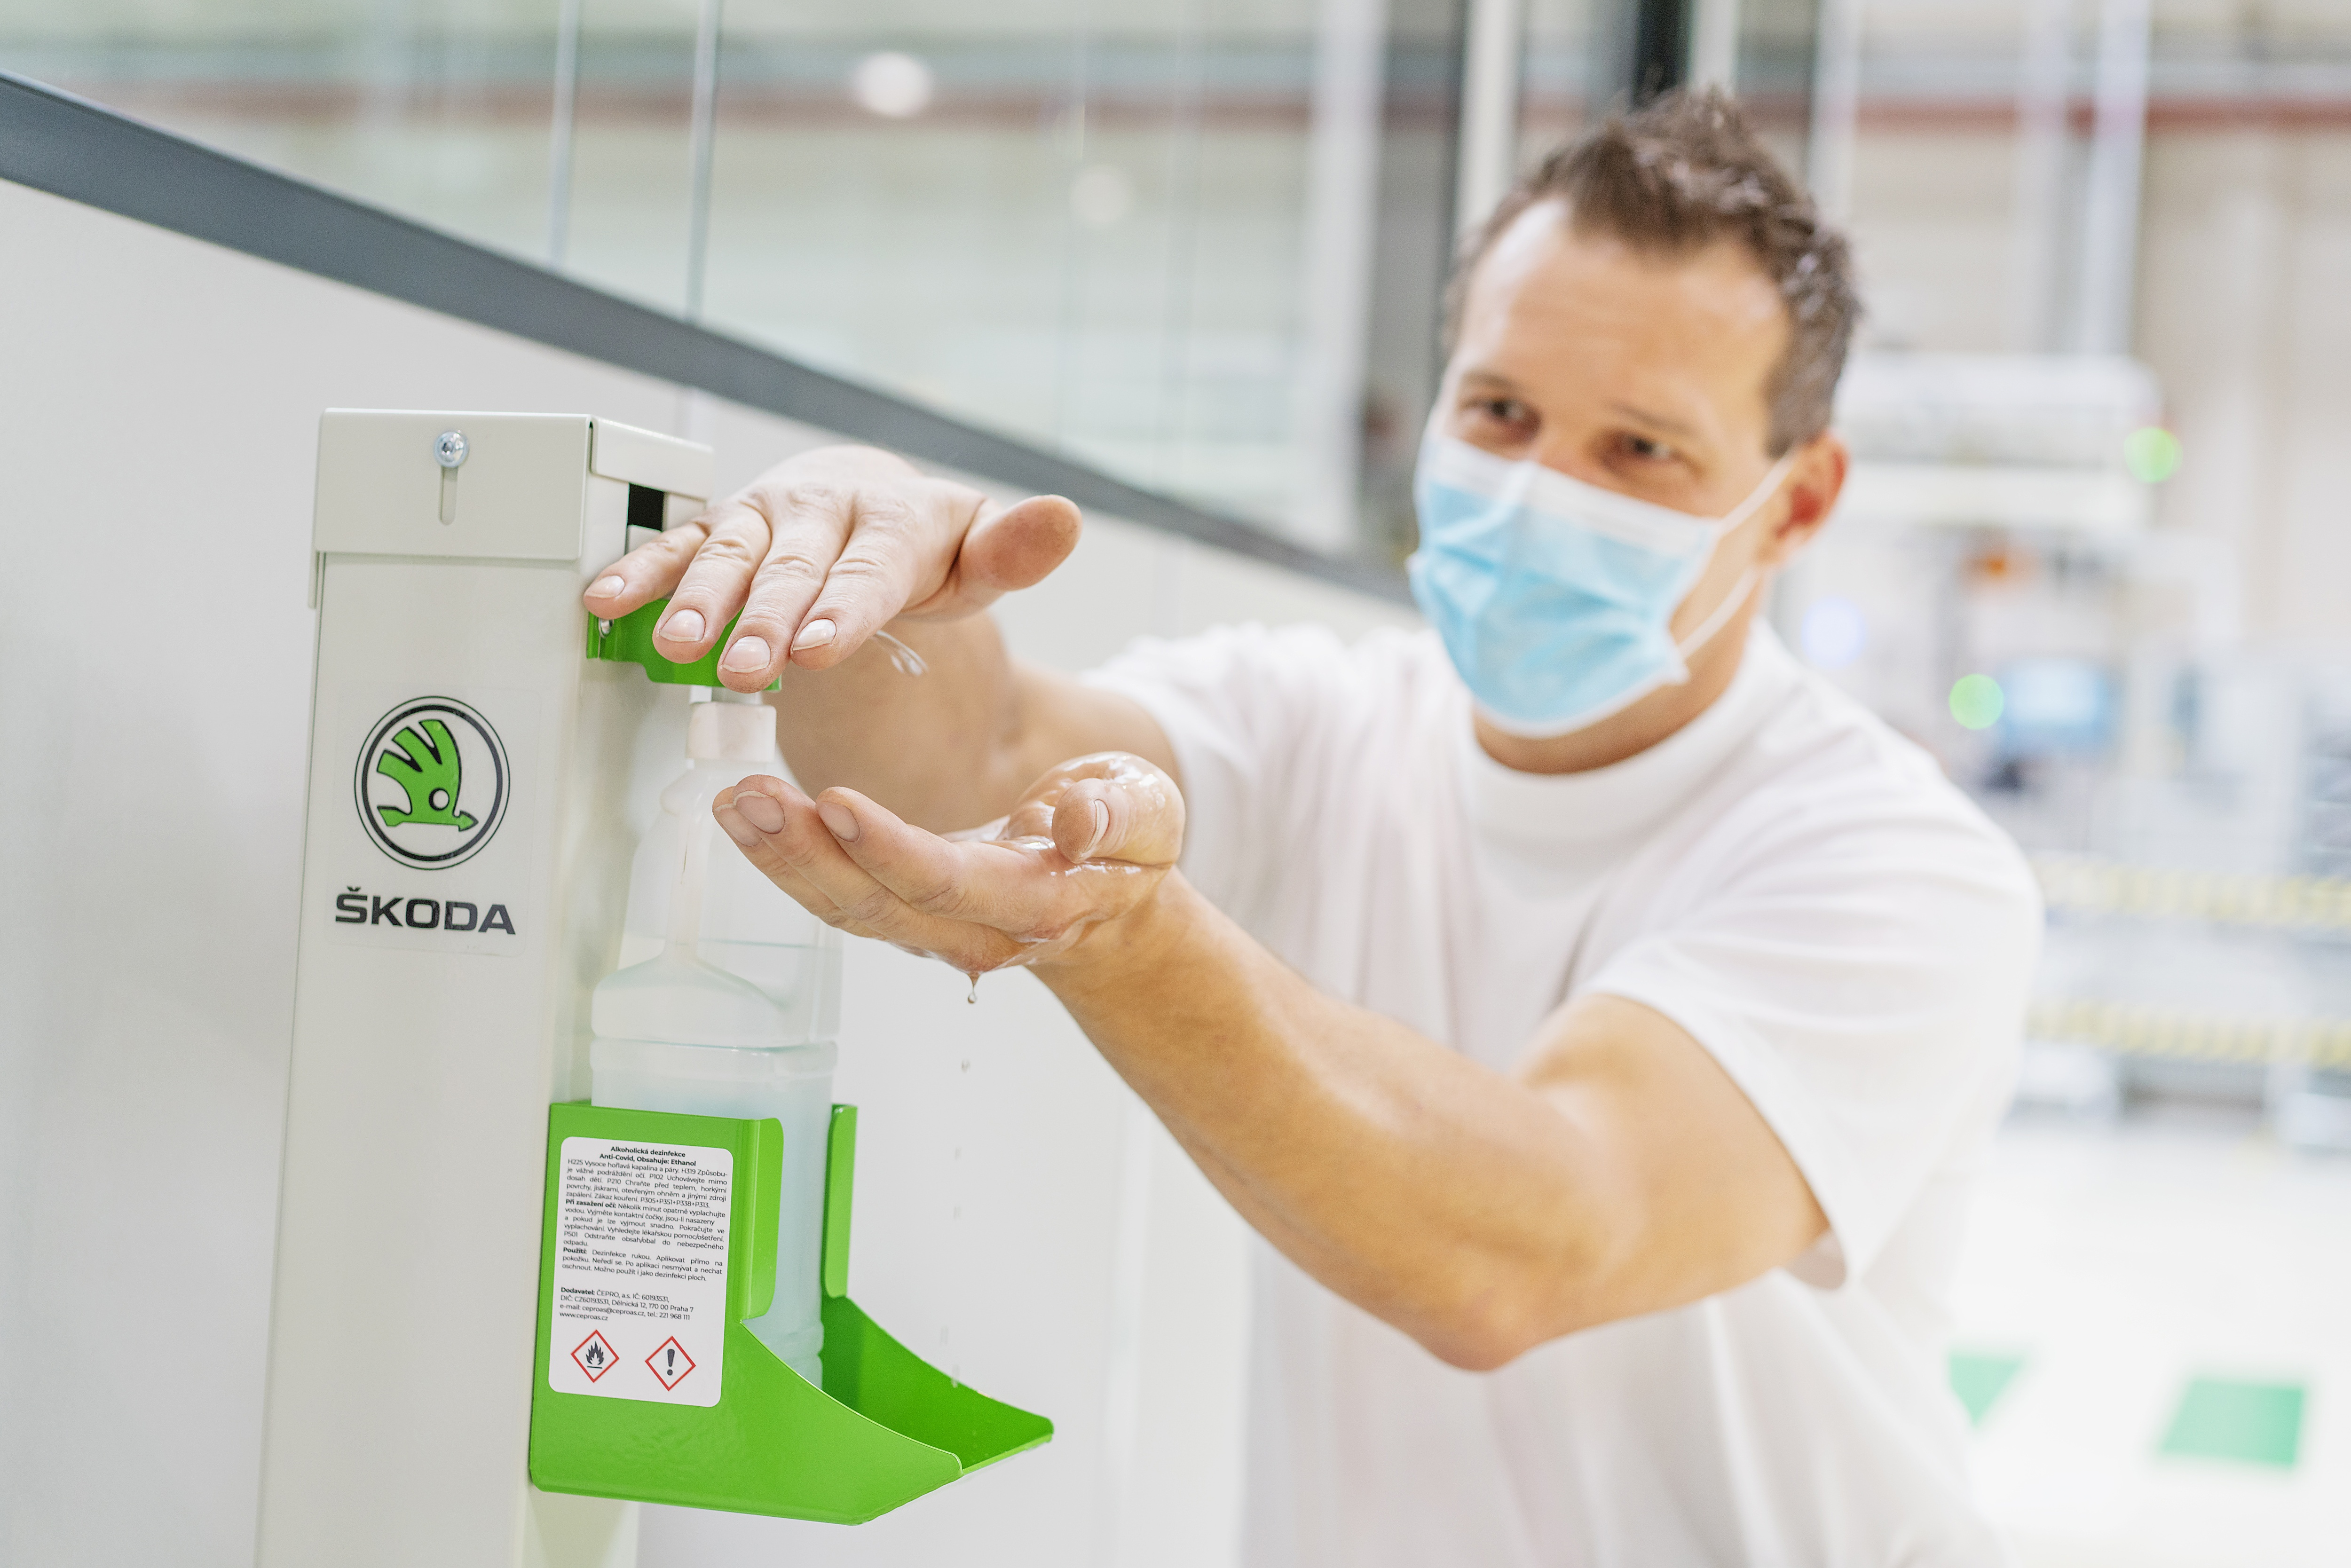 SKODA AUTO takes further precautions to prevent potential COVID-19 infections - Image 1